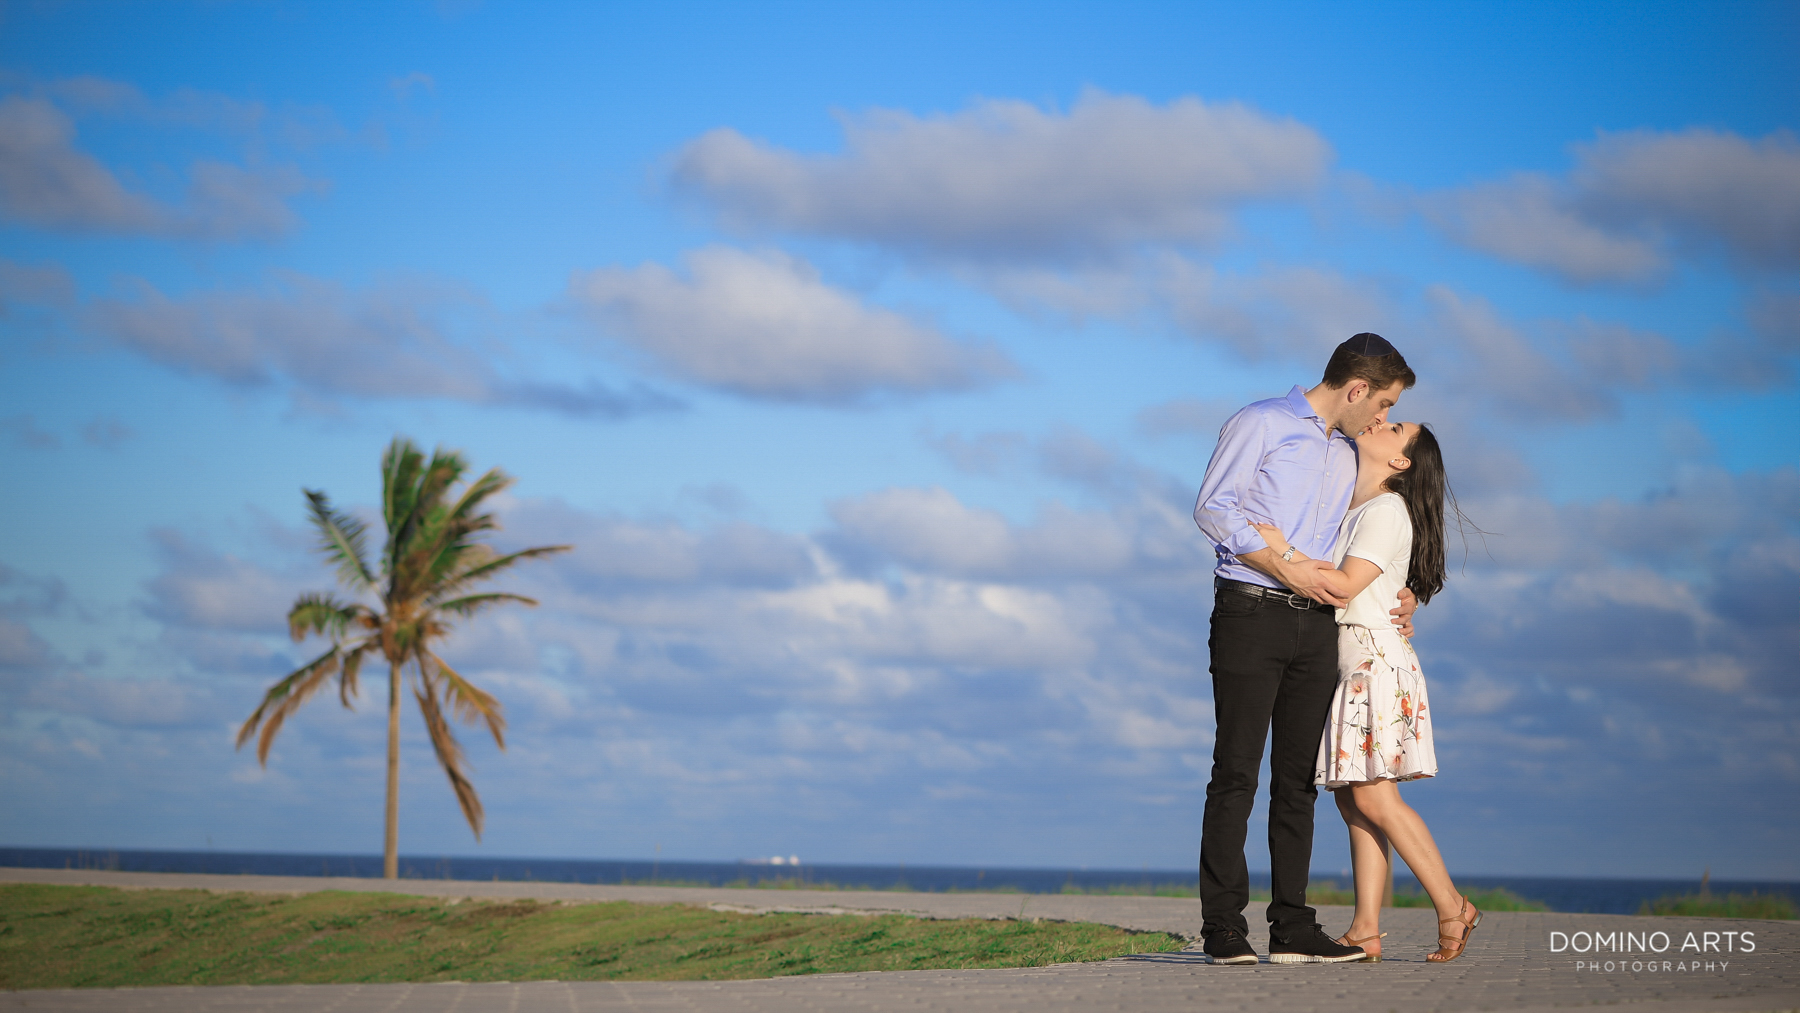 Simple romantic Destination Engagement Photography at Miami Beach